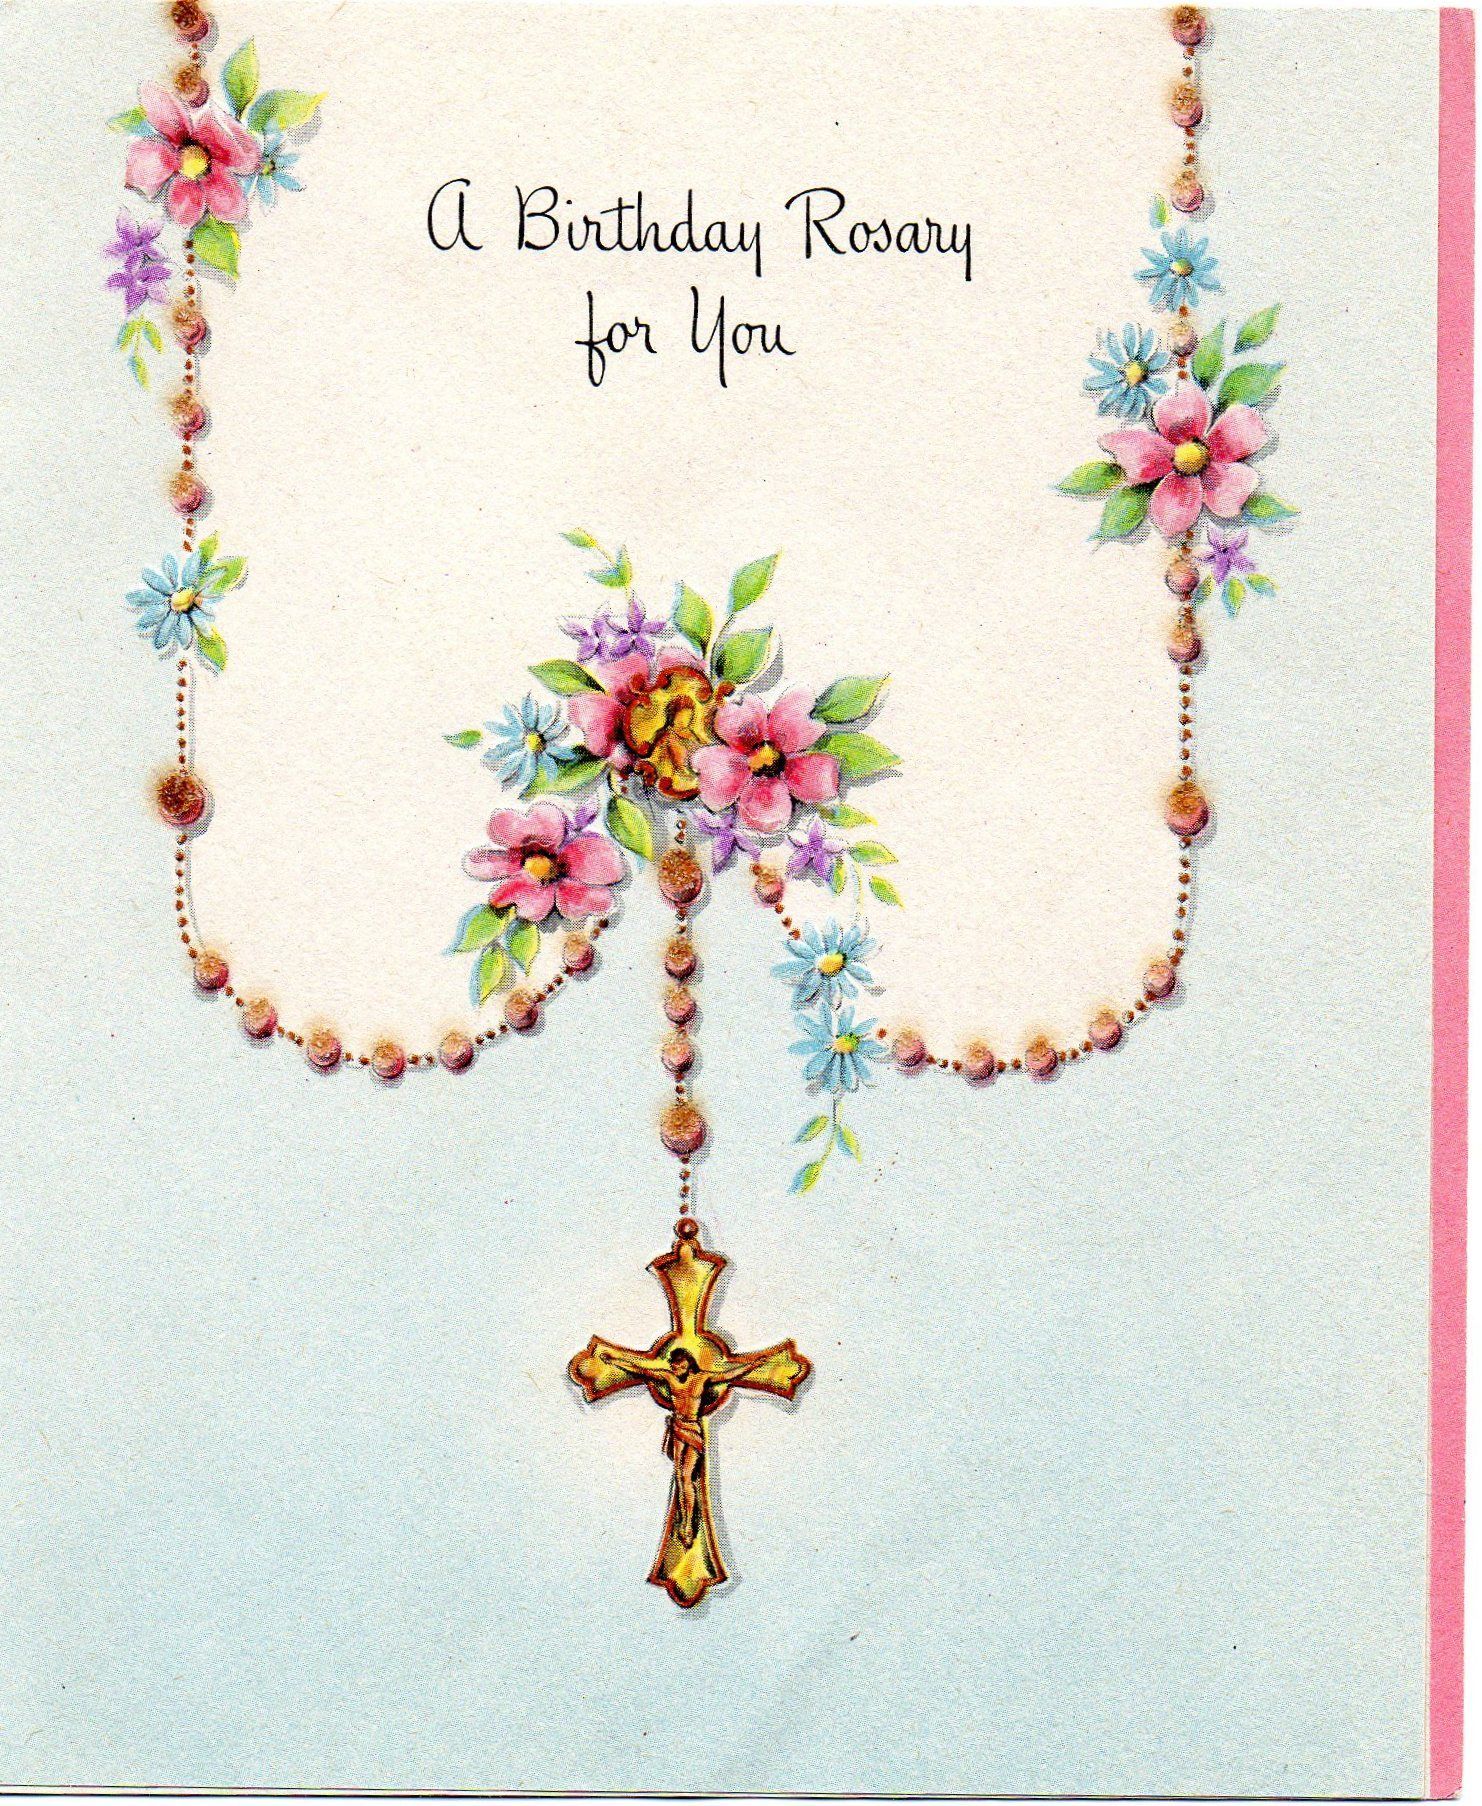 hight resolution of a birthday rosary for you may god watch over you each day and bless you lovingly this is the prayer i m saying on your birthday rosary